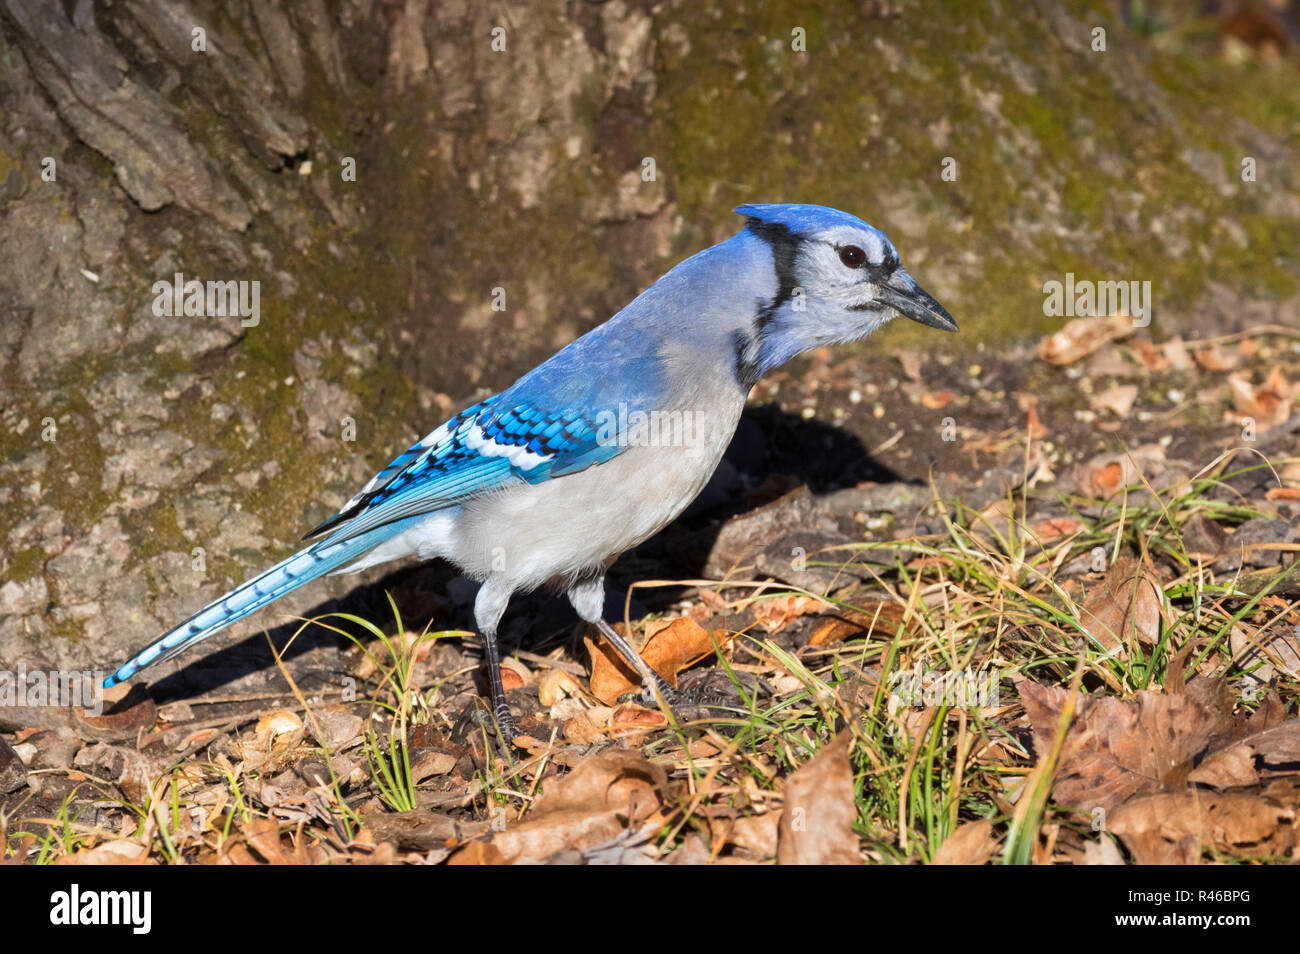 Blue jay (Cyanocitta cristata) searching acorns under an oak, Iowa, Ledges State Park, USA Stock Photo